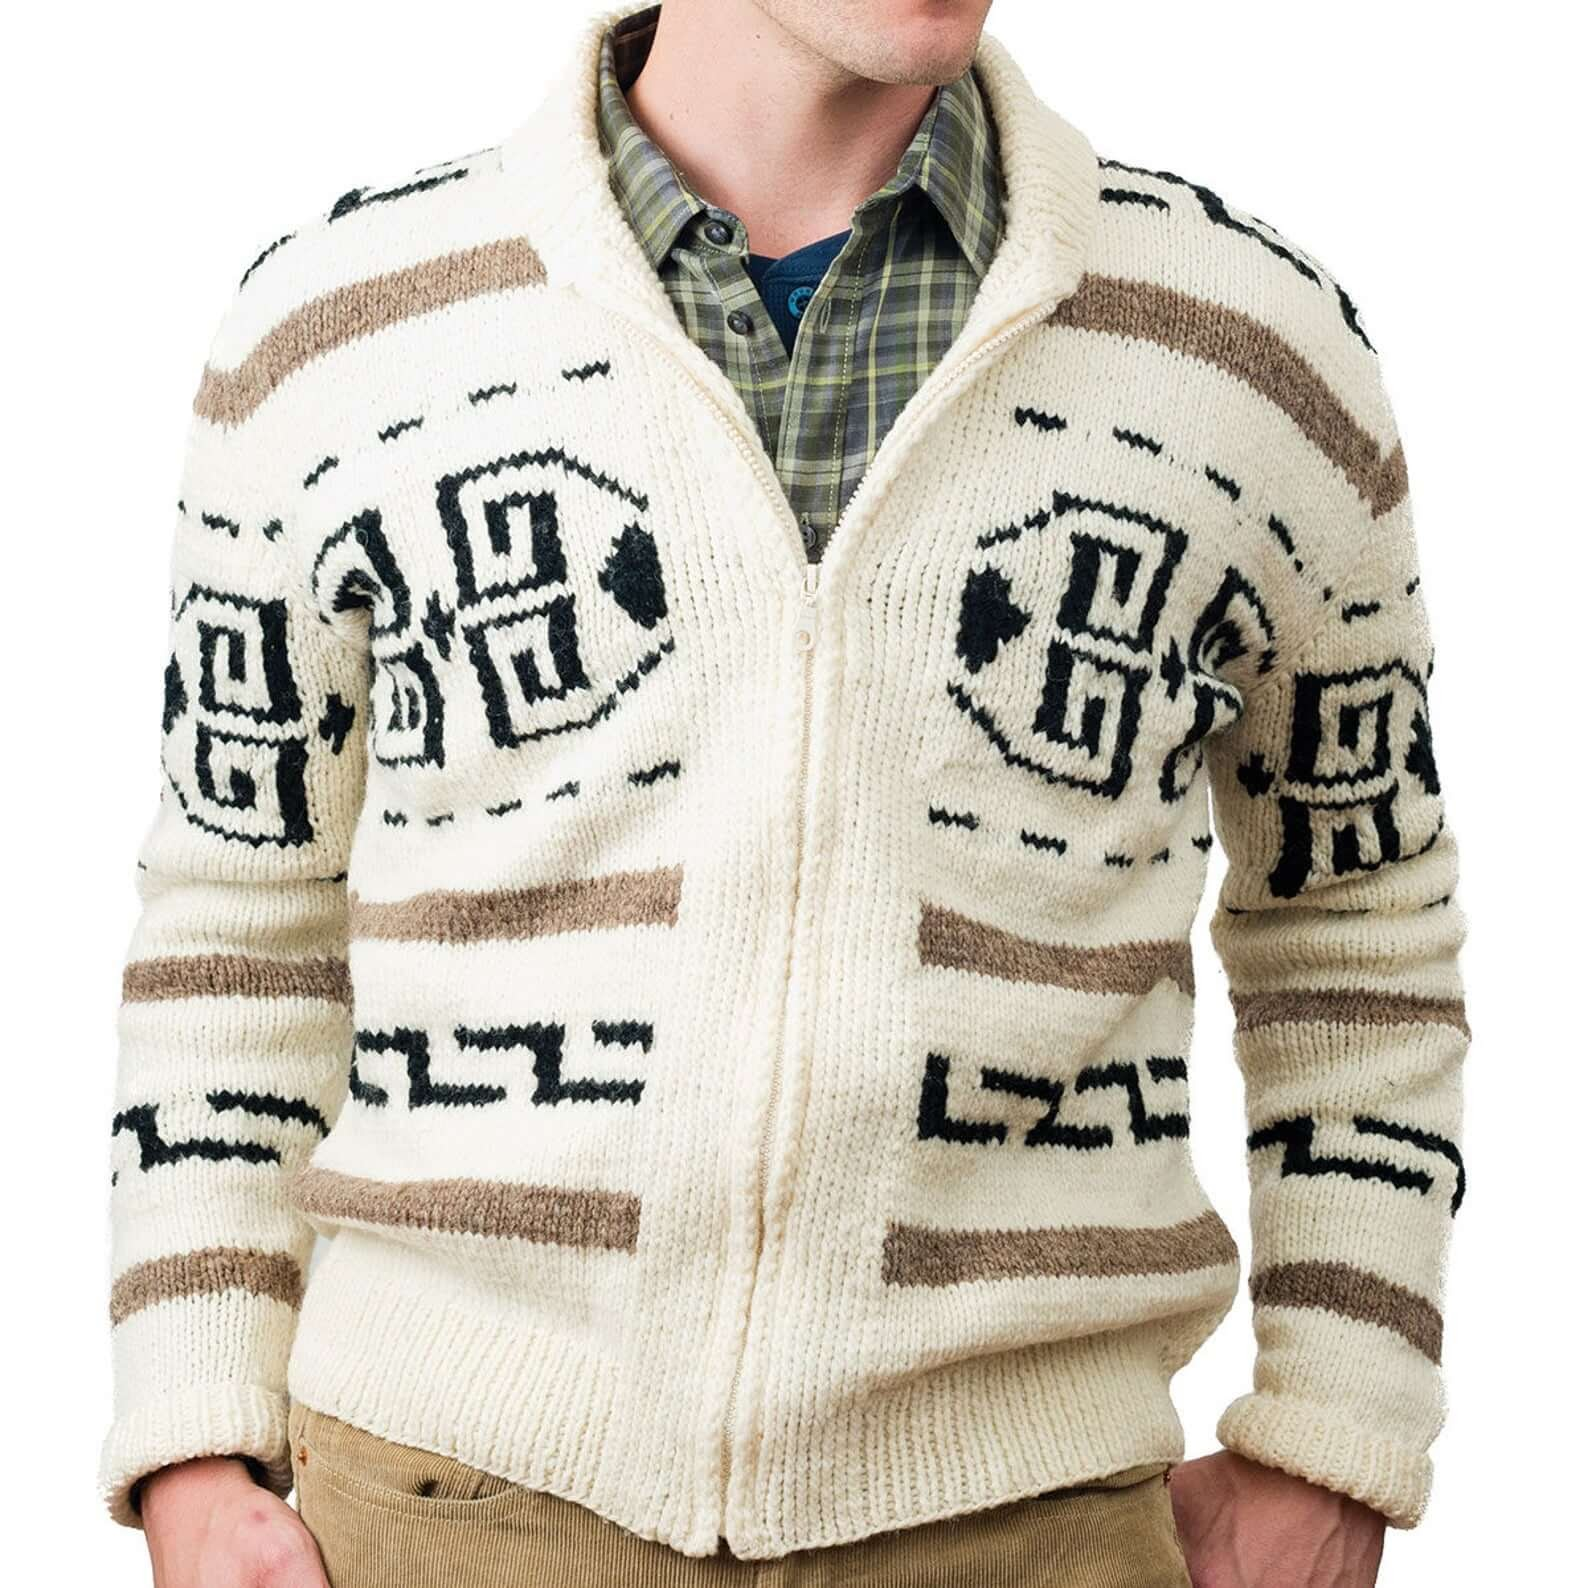 Sweater that matches the Dude from the Big Lebowski